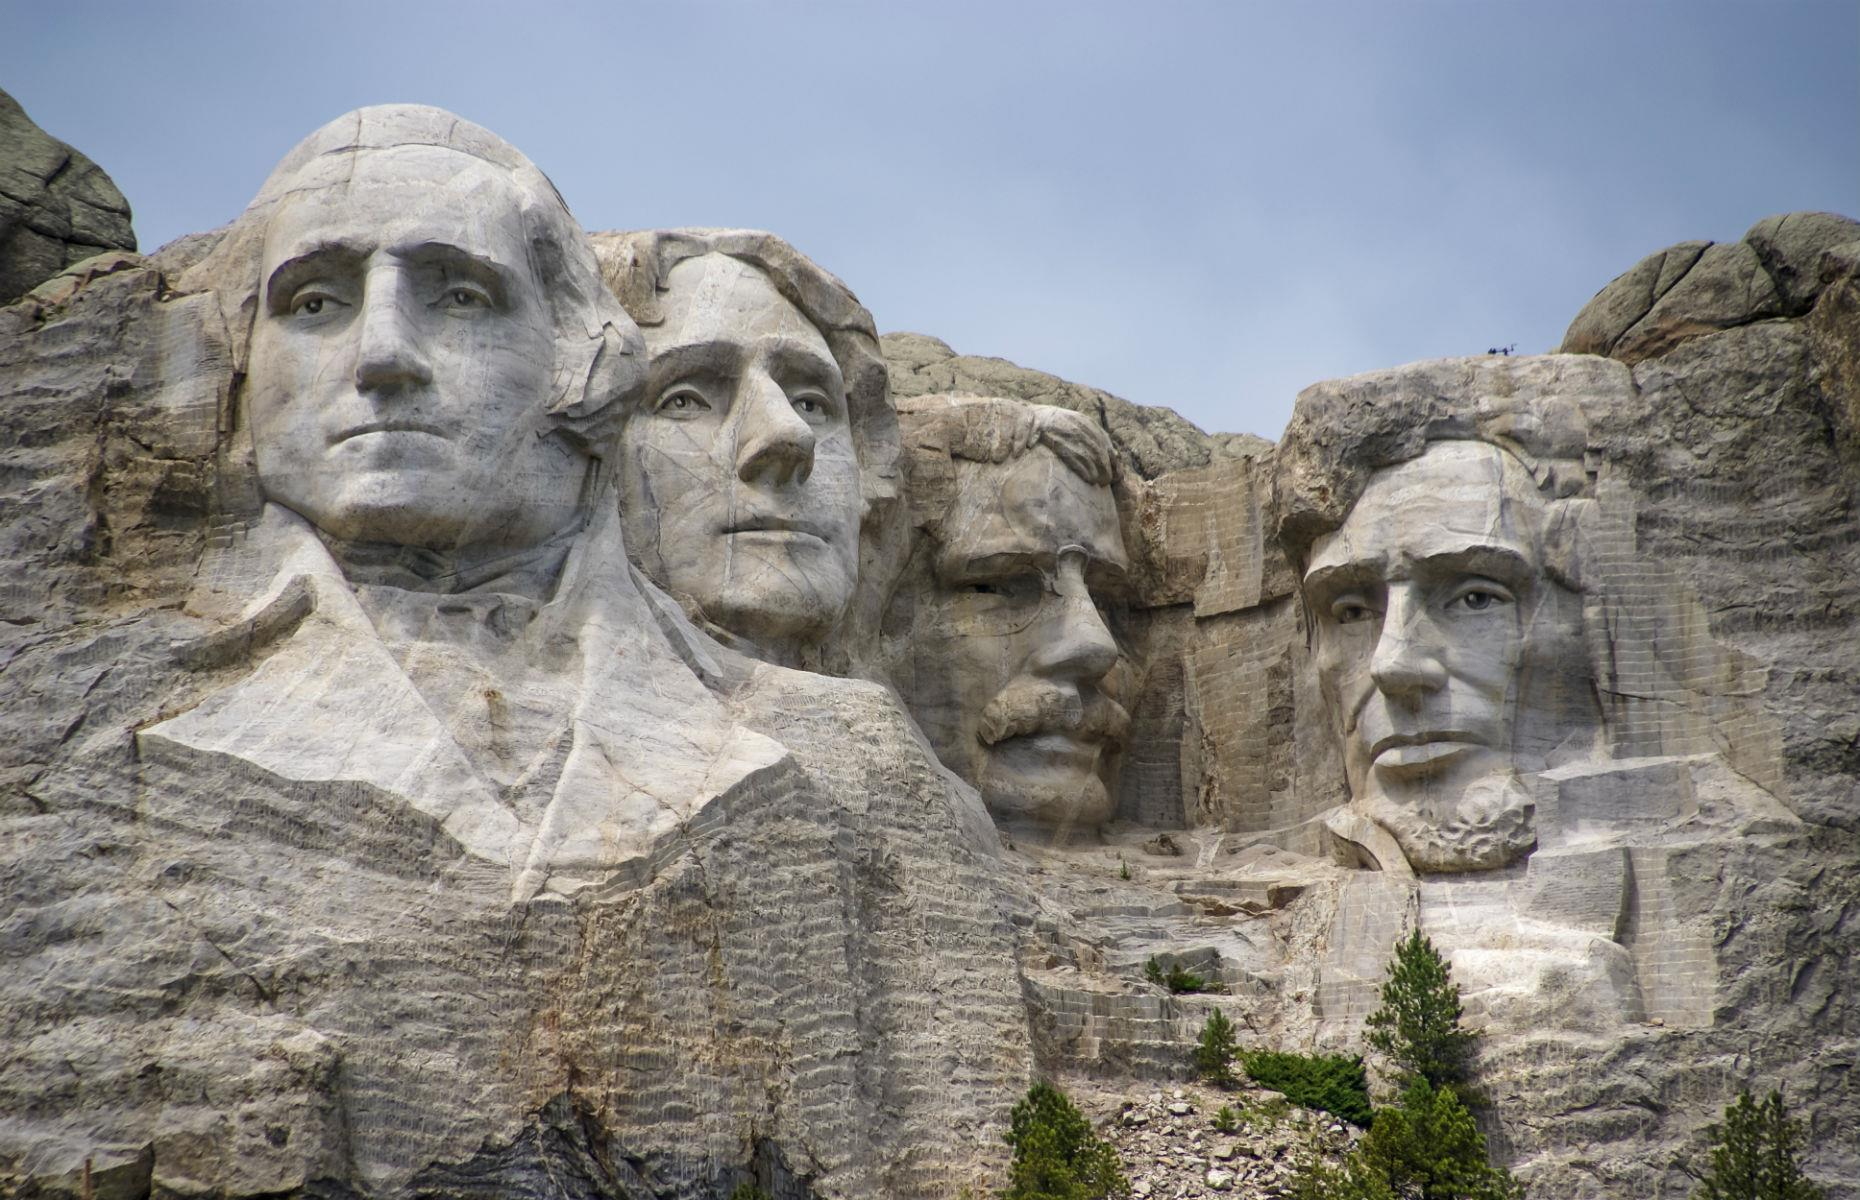 Slide 18 of 45: The Mount Rushmore National Memorial is one of the USA's most recognizable sights, with the 60-feet-tall (18m) faces of four legendary American presidents carved into granite. But there's more to this monument than meets the eye.